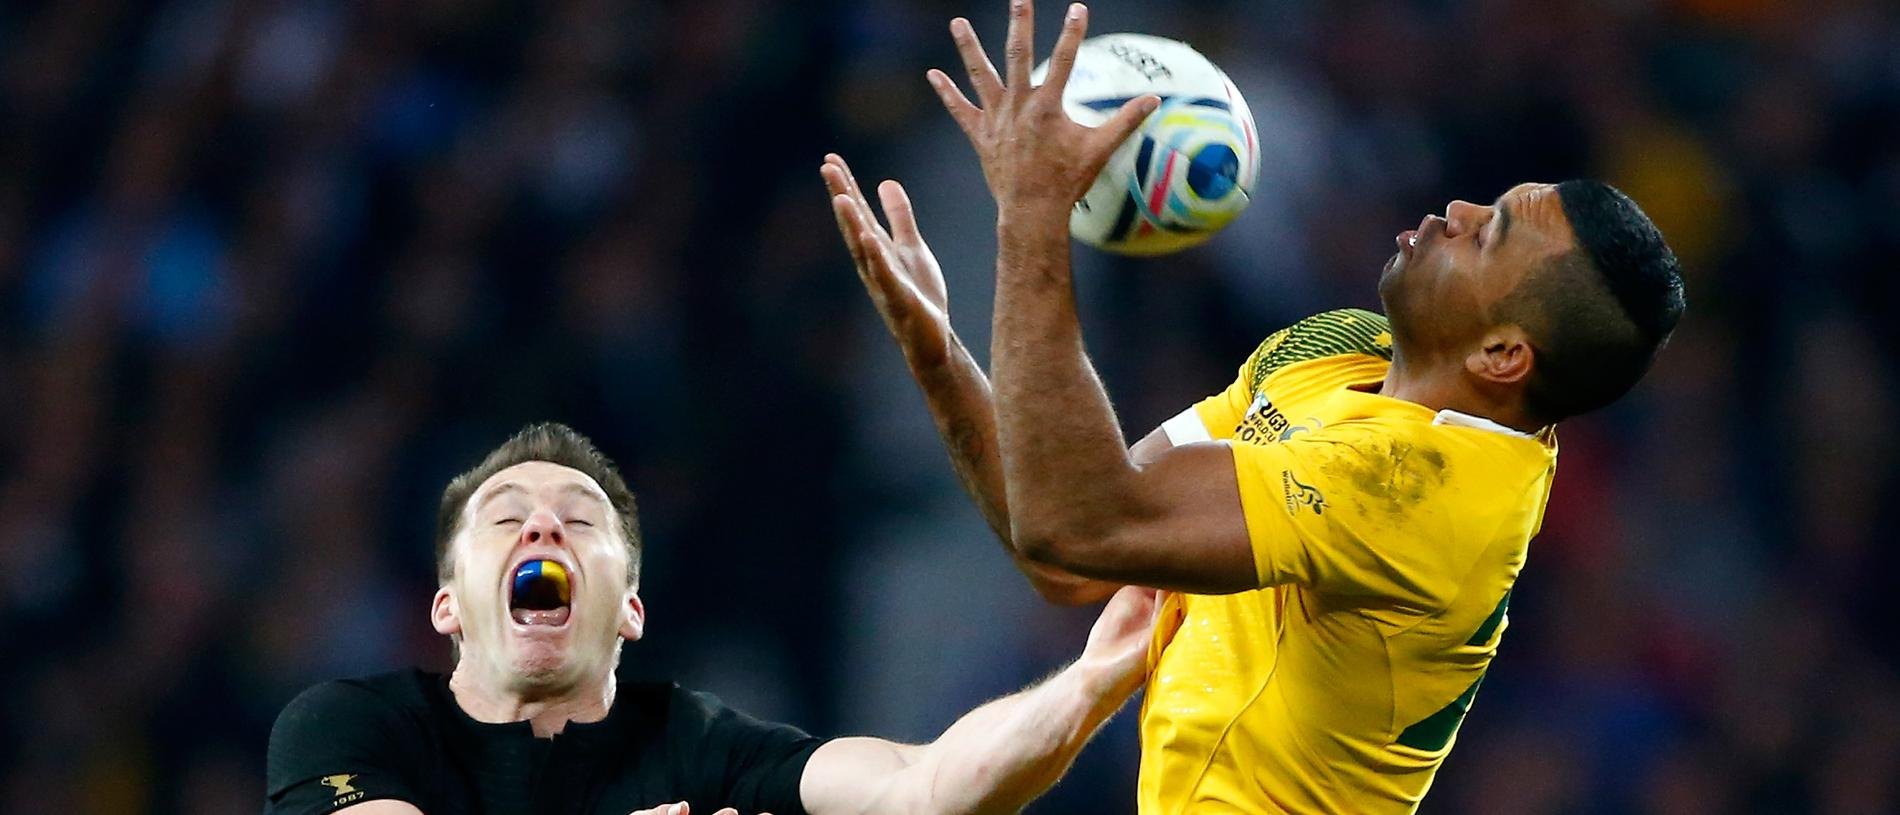 LONDON, ENGLAND - OCTOBER 31: Kurtley Beale of Australia is challenged by Ben Smith of New Zealand under the high ball during the 2015 Rugby World Cup Final match between New Zealand and Australia at Twickenham Stadium on October 31, 2015 in London, United Kingdom. (Photo by Stu Forster/Getty Images)